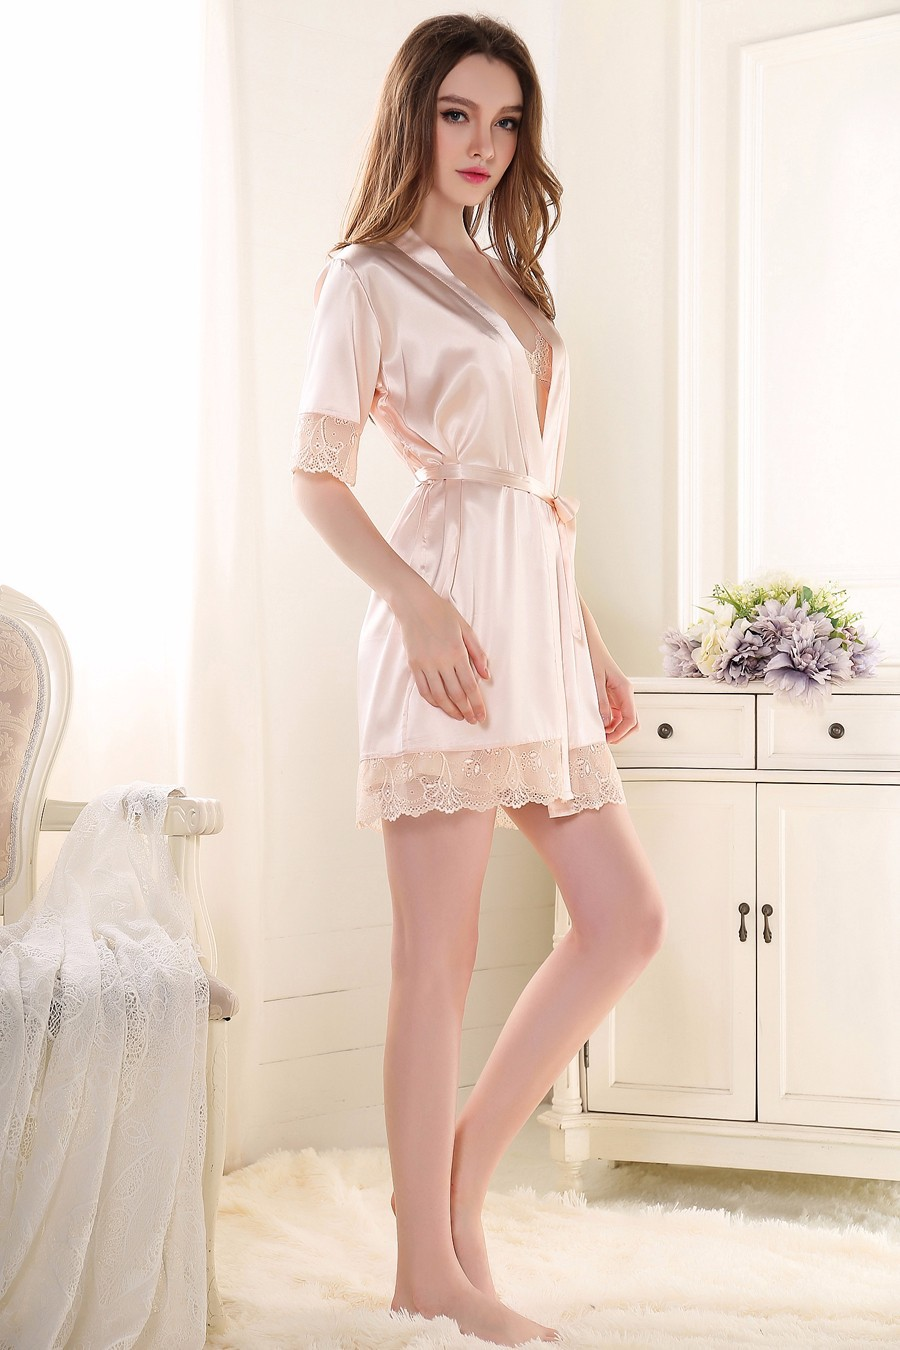 Women Sexy Charming Bathrobe Lingerie Pajamas sets Rayon Nightgown ... 4471a3269